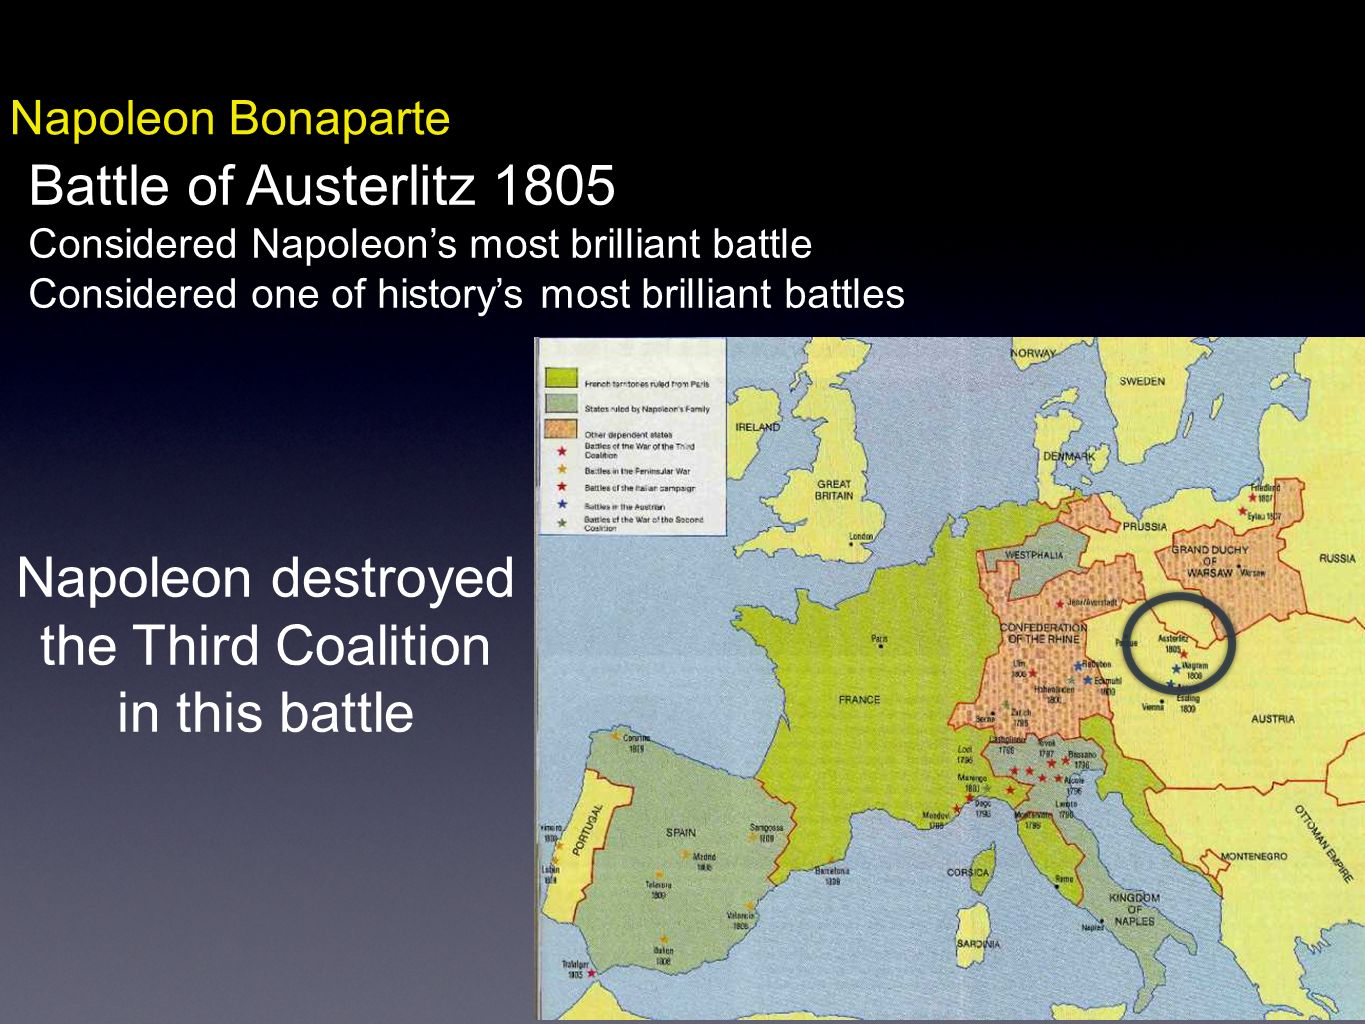 Napoleon destroyed the Third Coalition in this battle